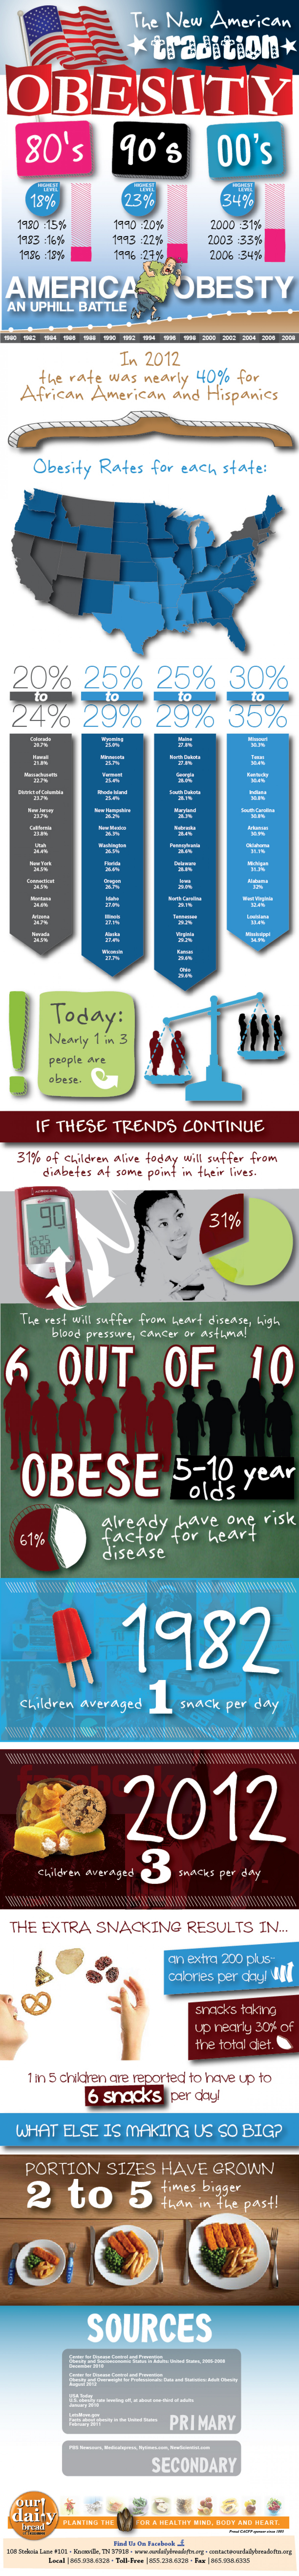 The New American Tradition: Obesity Infographic